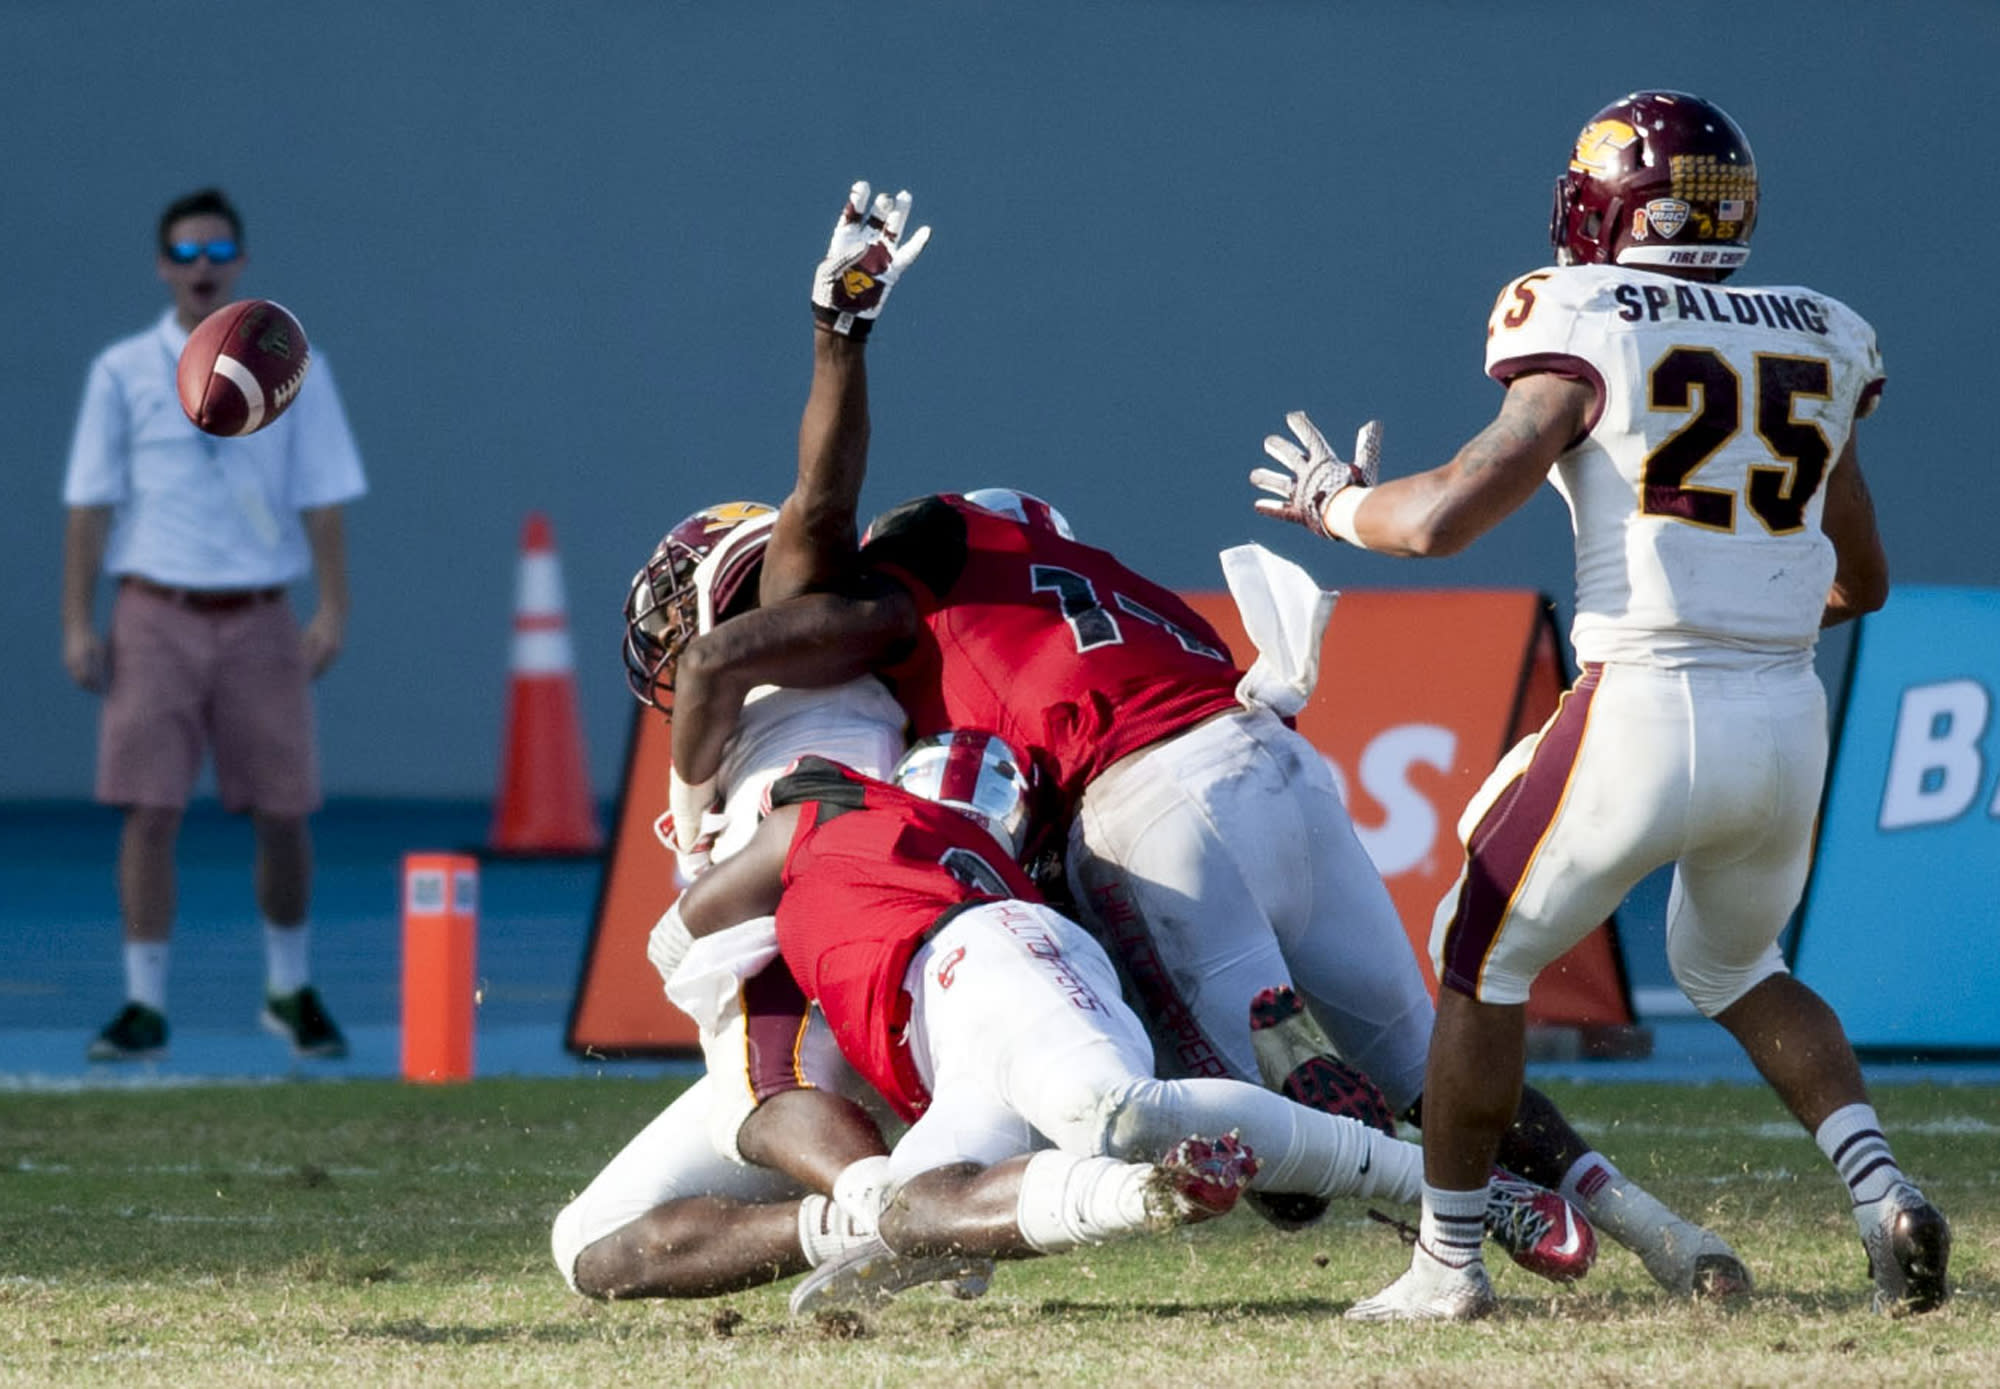 Central Michigan falls to Western Kentucky, 49-48